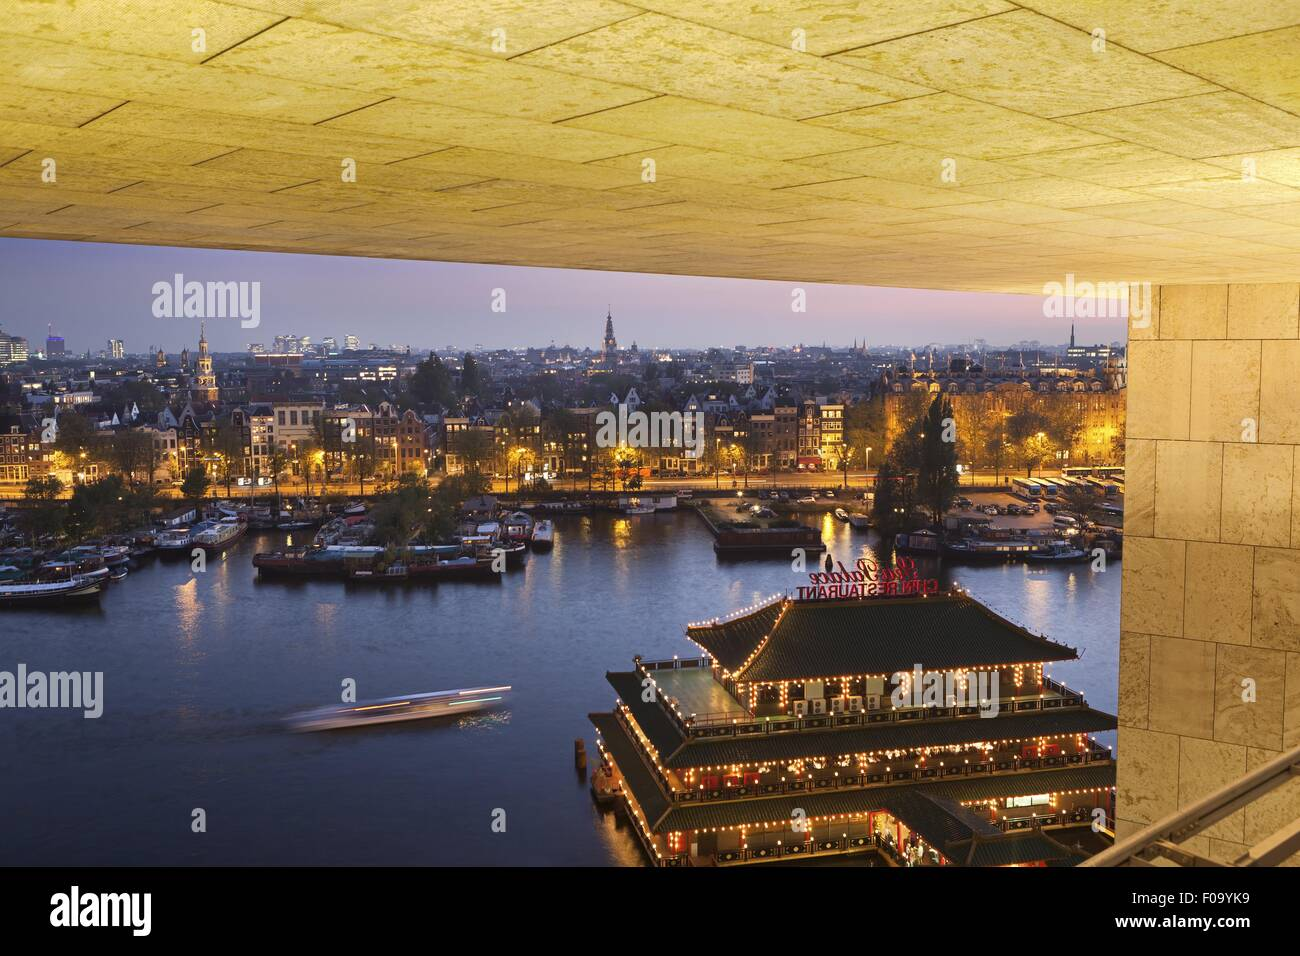 View of illuminated Old Town from roof terrace of public library, Amsterdam, Netherlands - Stock Image